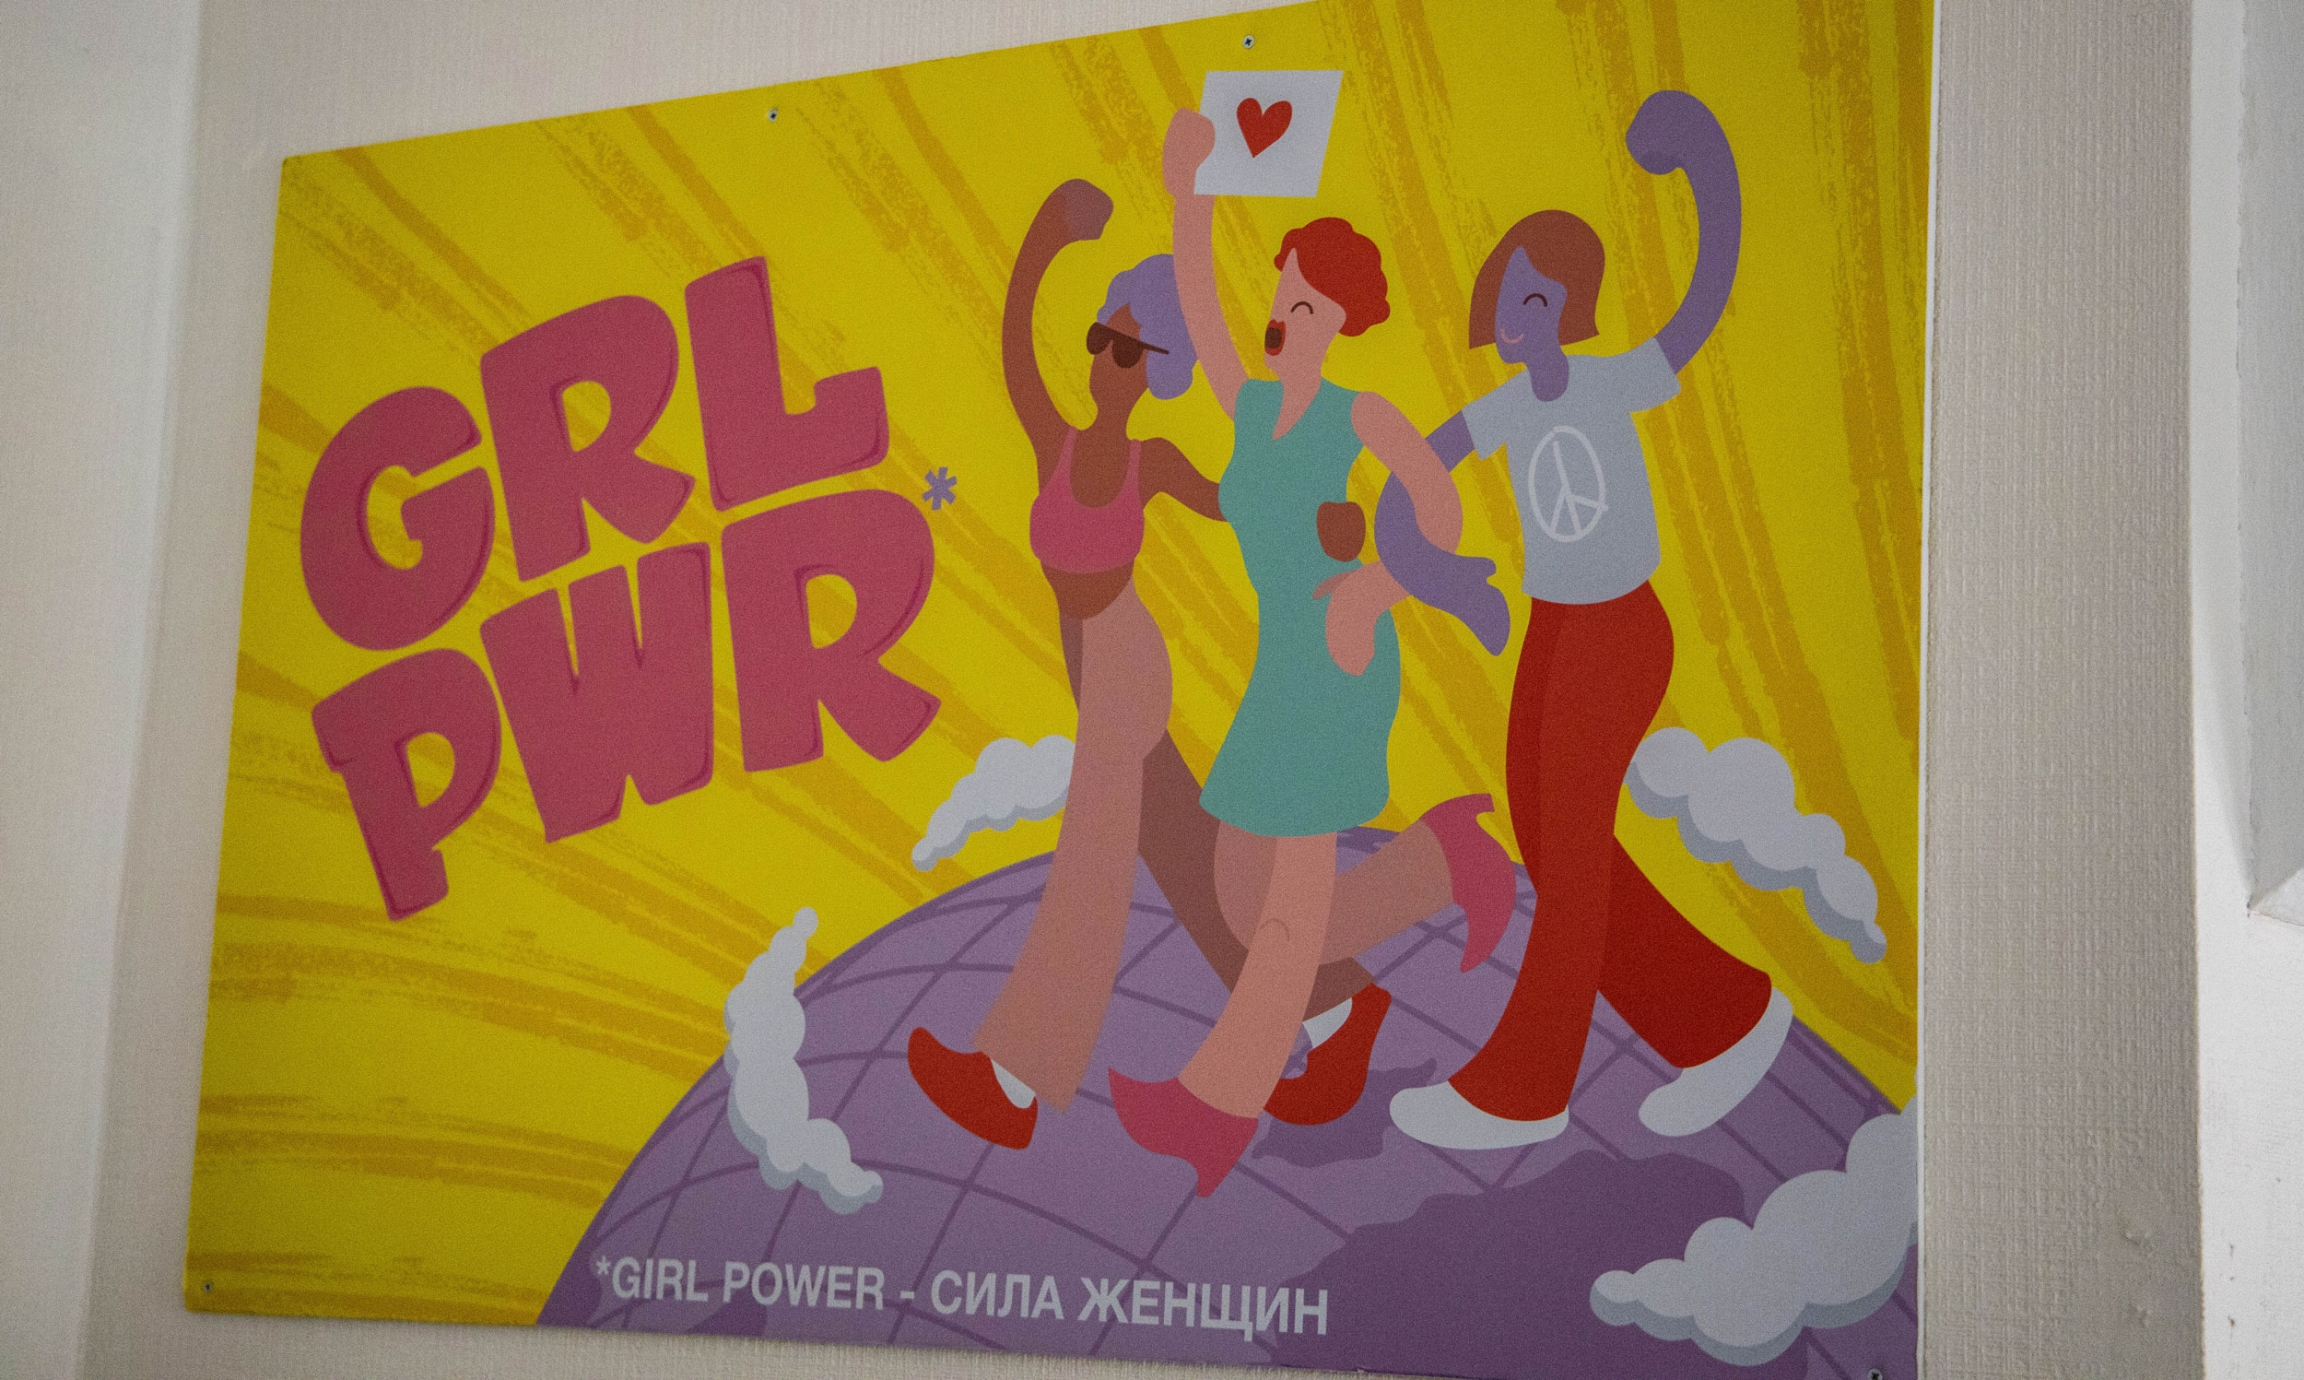 An illustrated poster shows three women linked arm in arm walking on a globe and it says GRL PWR.